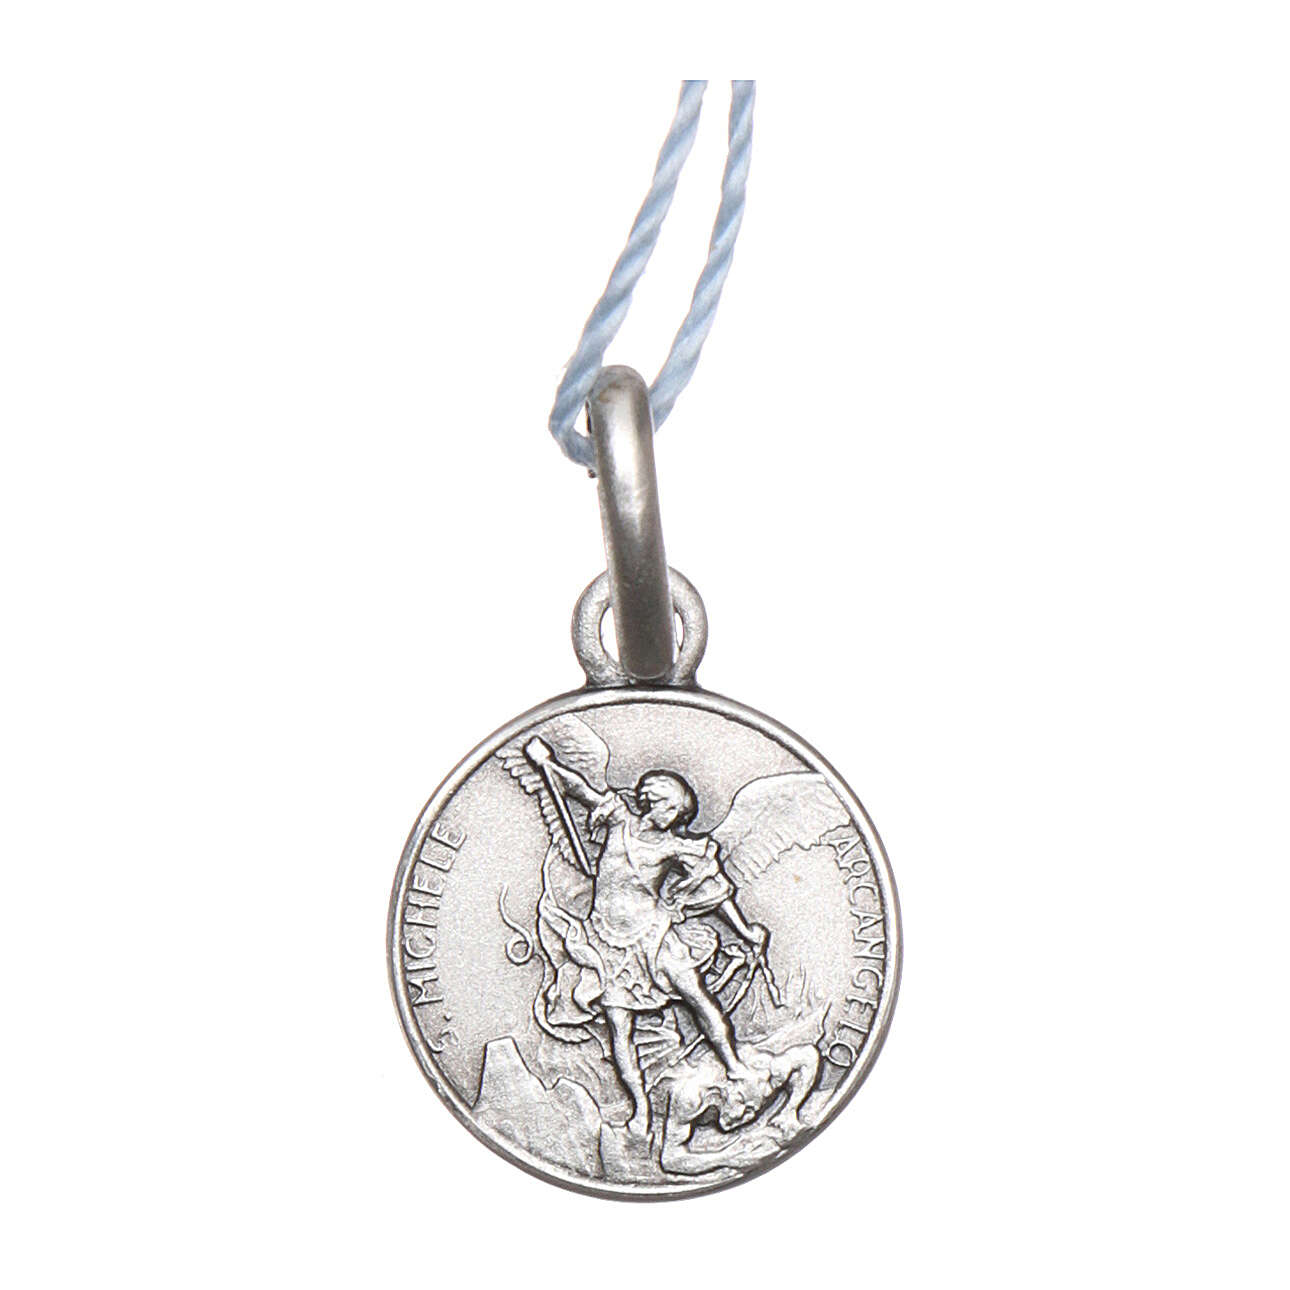 Saint Michael the Archangel medal 925 silver finished in rhodium 0.39 in 4